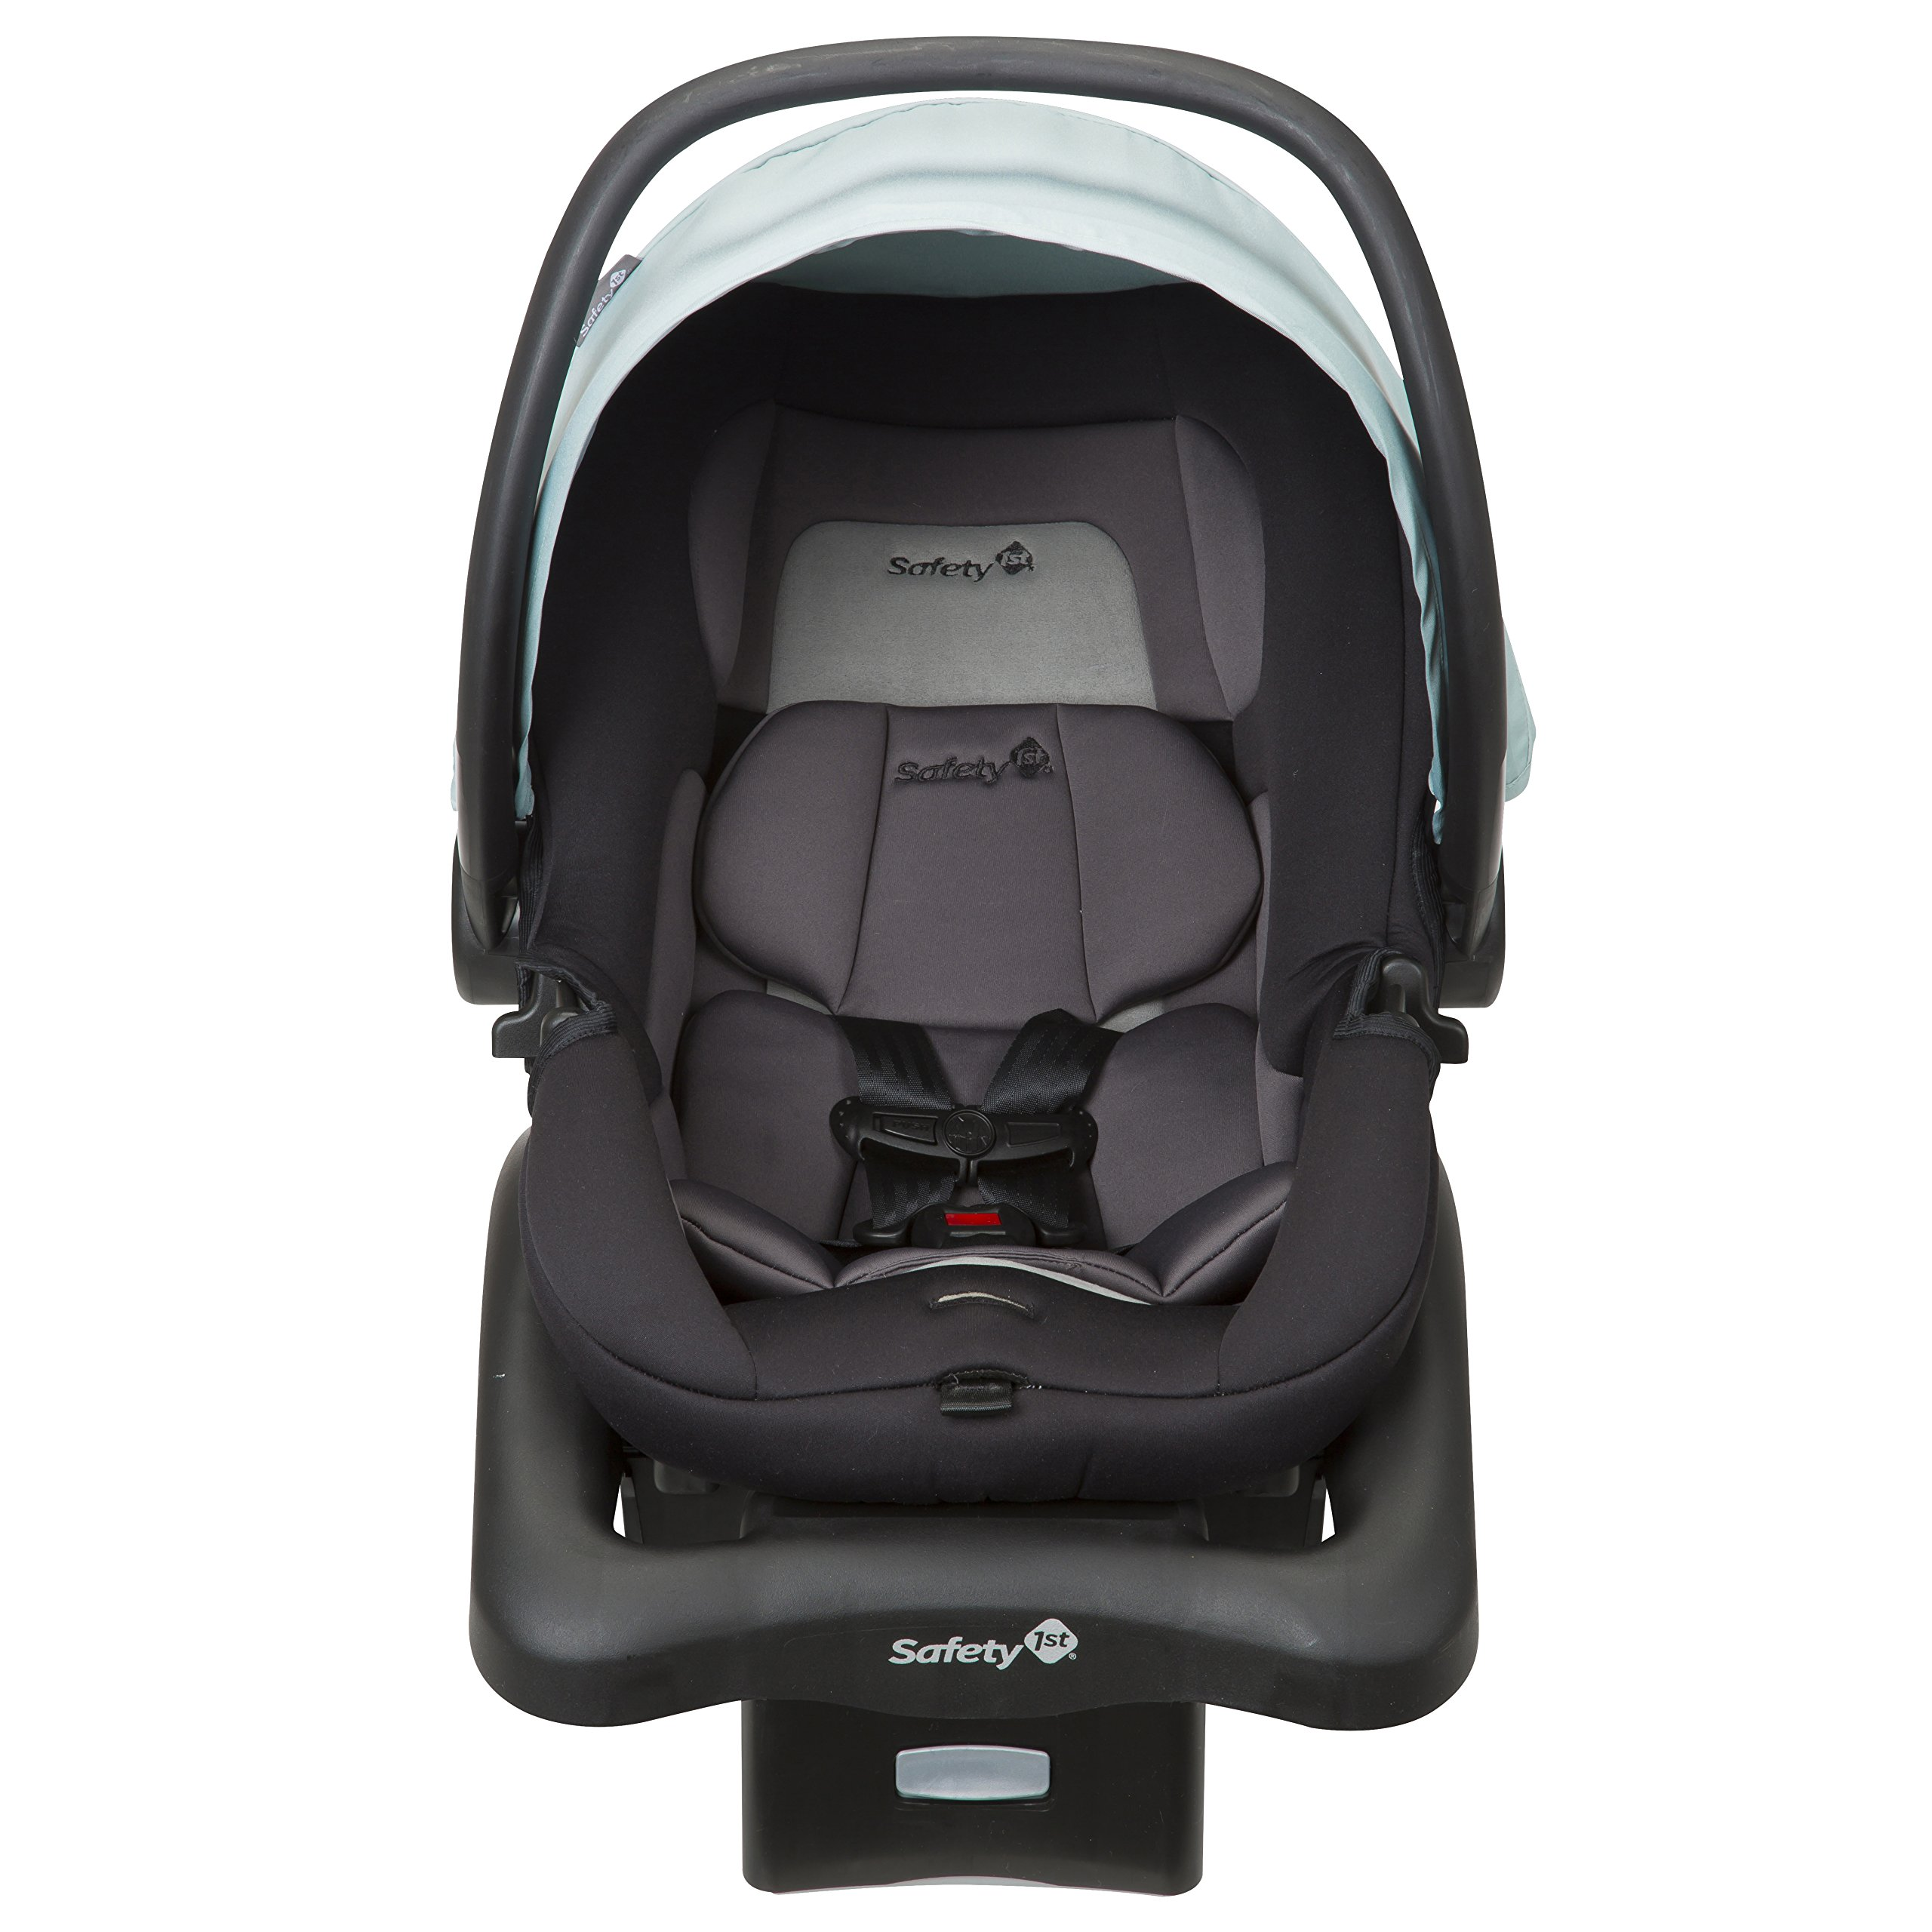 Safety 1st onBoard 35 LT Infant Car Seat, Juniper Pop by Safety 1st (Image #10)